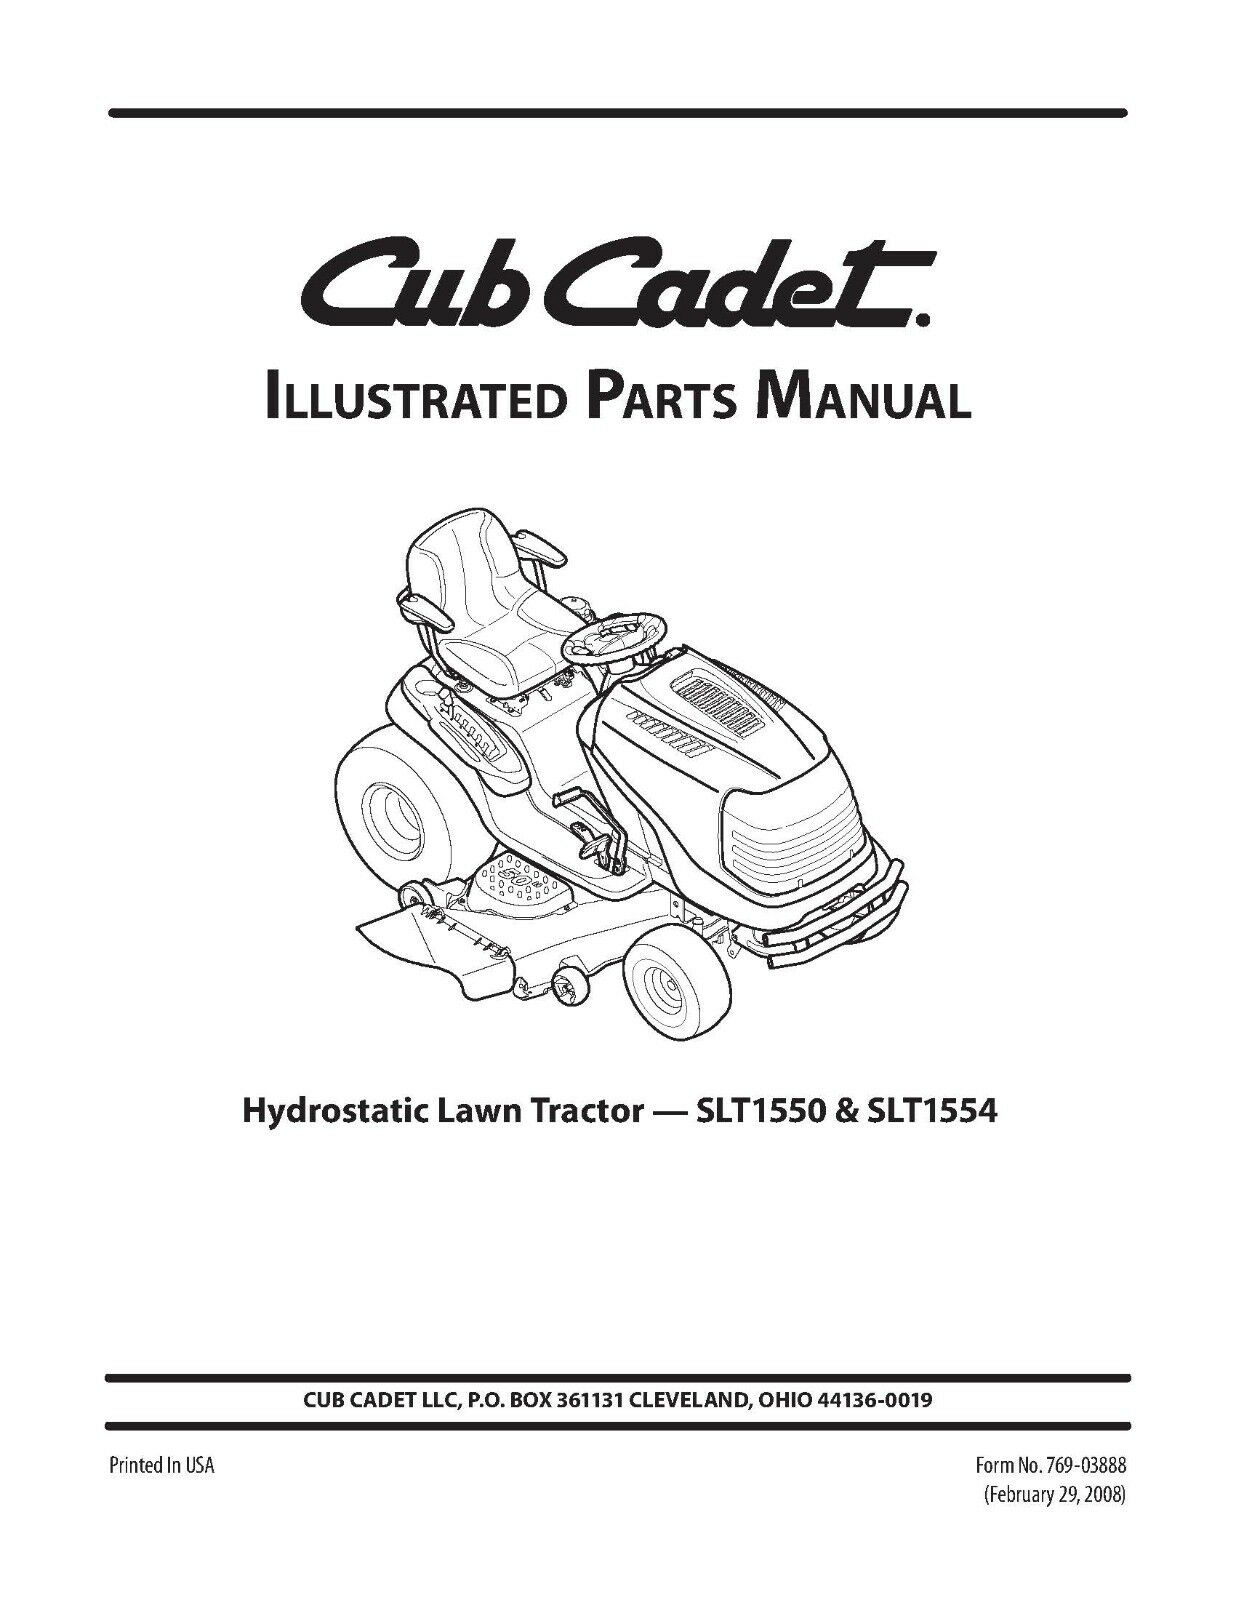 Cub Cadet Parts Manual Model No. SLT 1550 - SLT 1554 1 of 2FREE Shipping ...